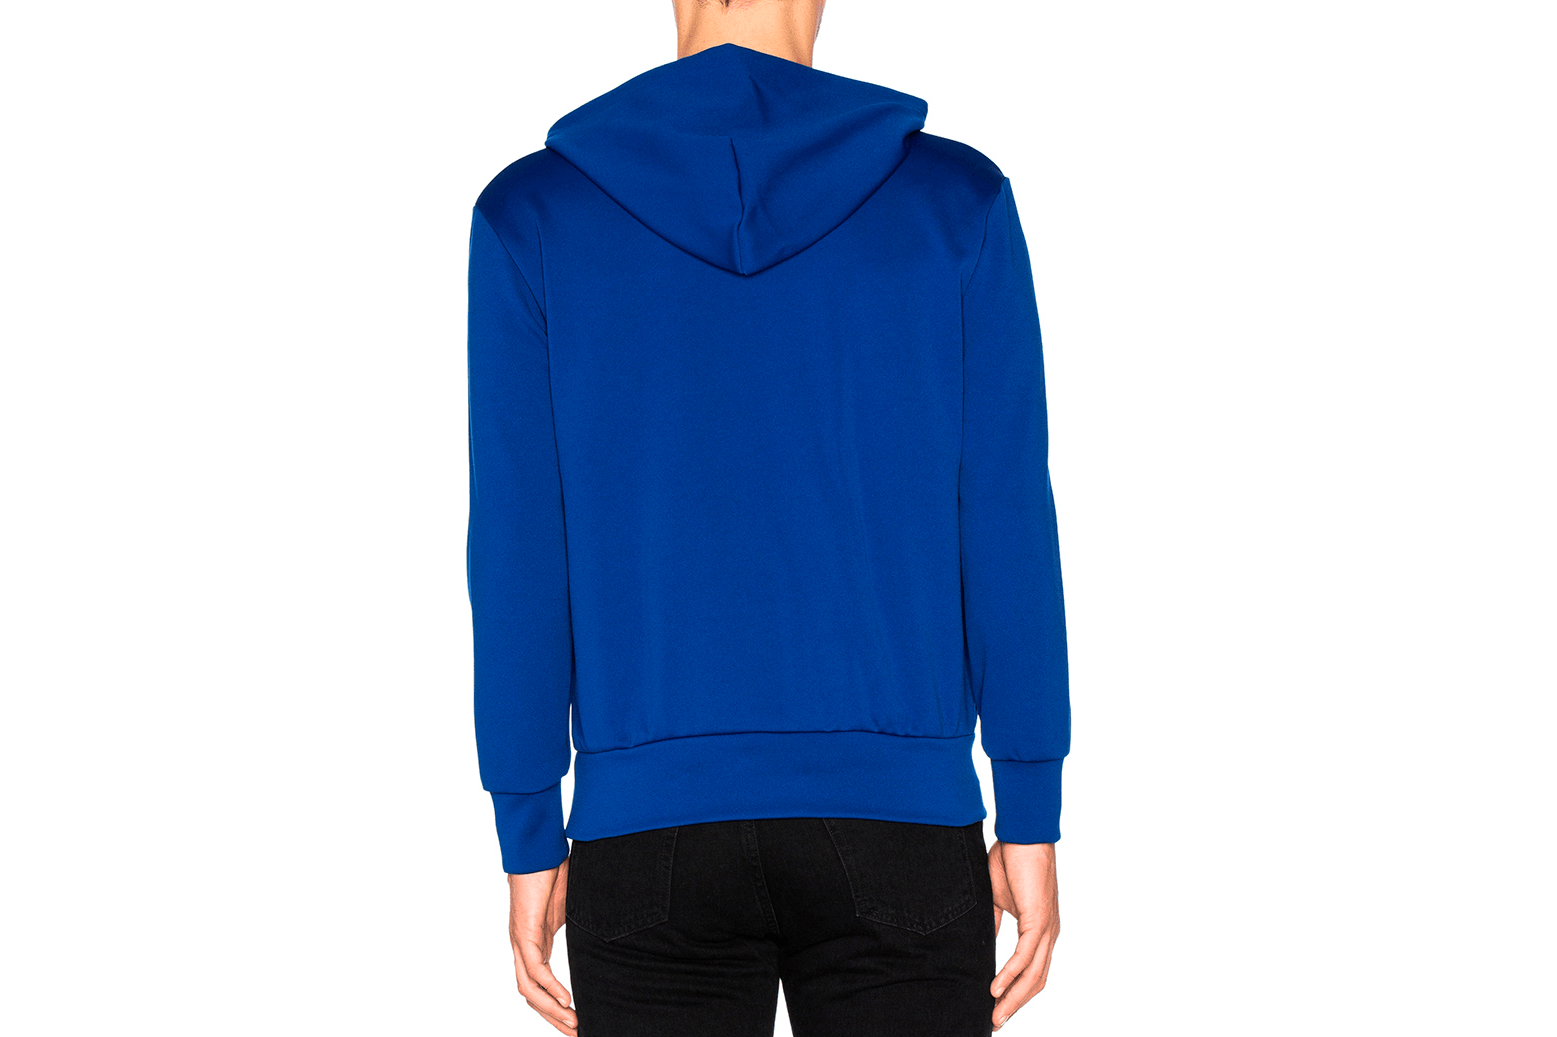 RED EMBLEM LIGHTWEIGHT HOODIE-AZT174 MENS SOFTGOODS COMME DES GARCONS